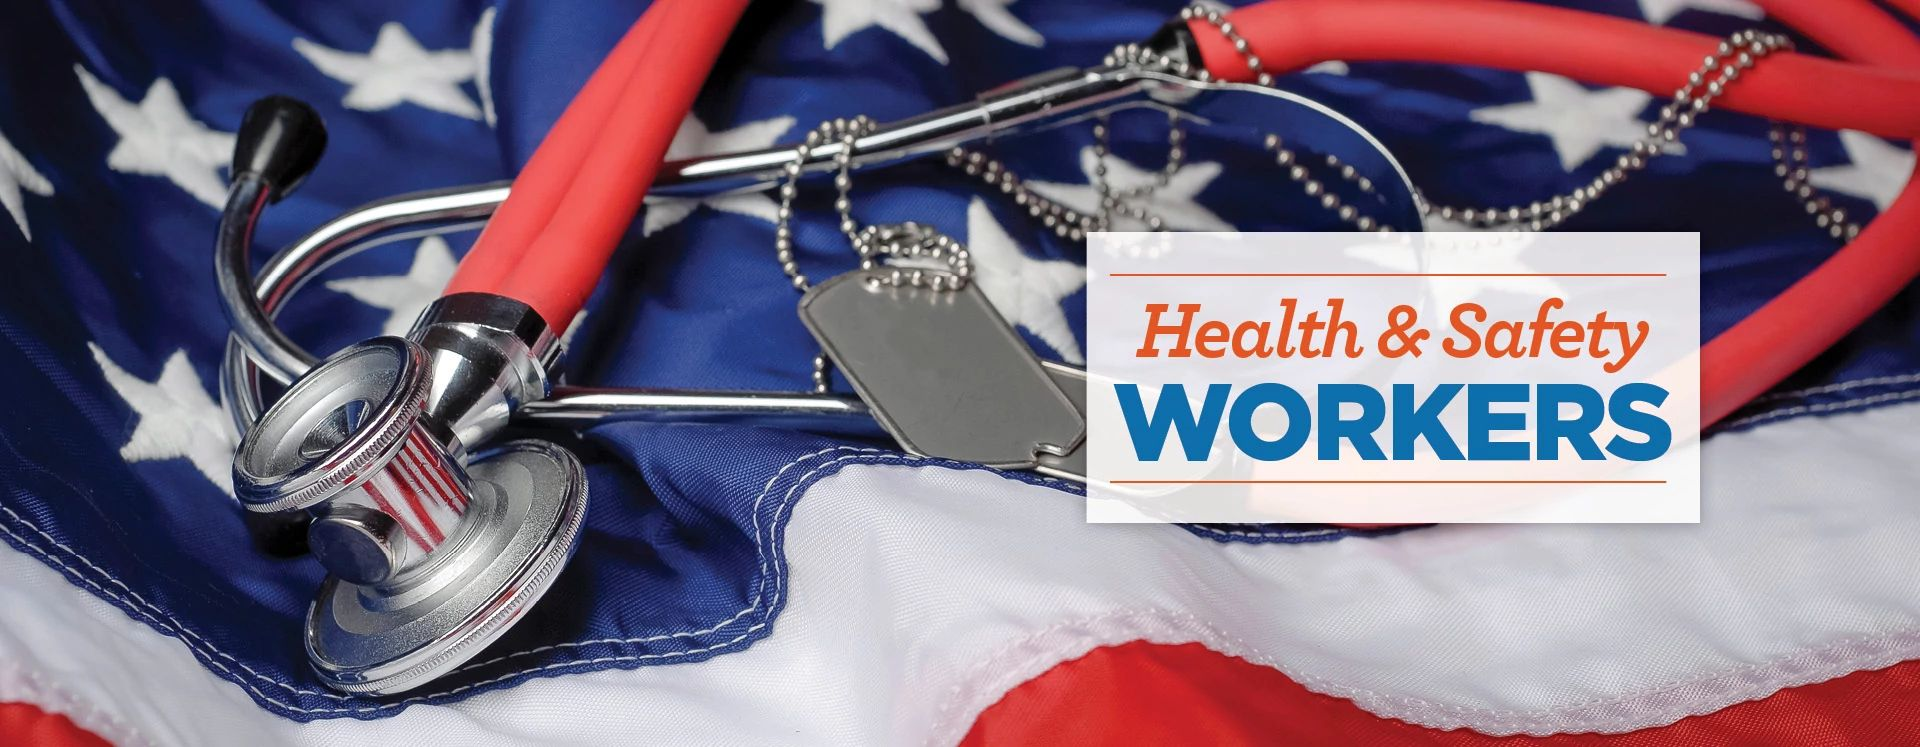 A stethoscope and military tags against an American Flag.